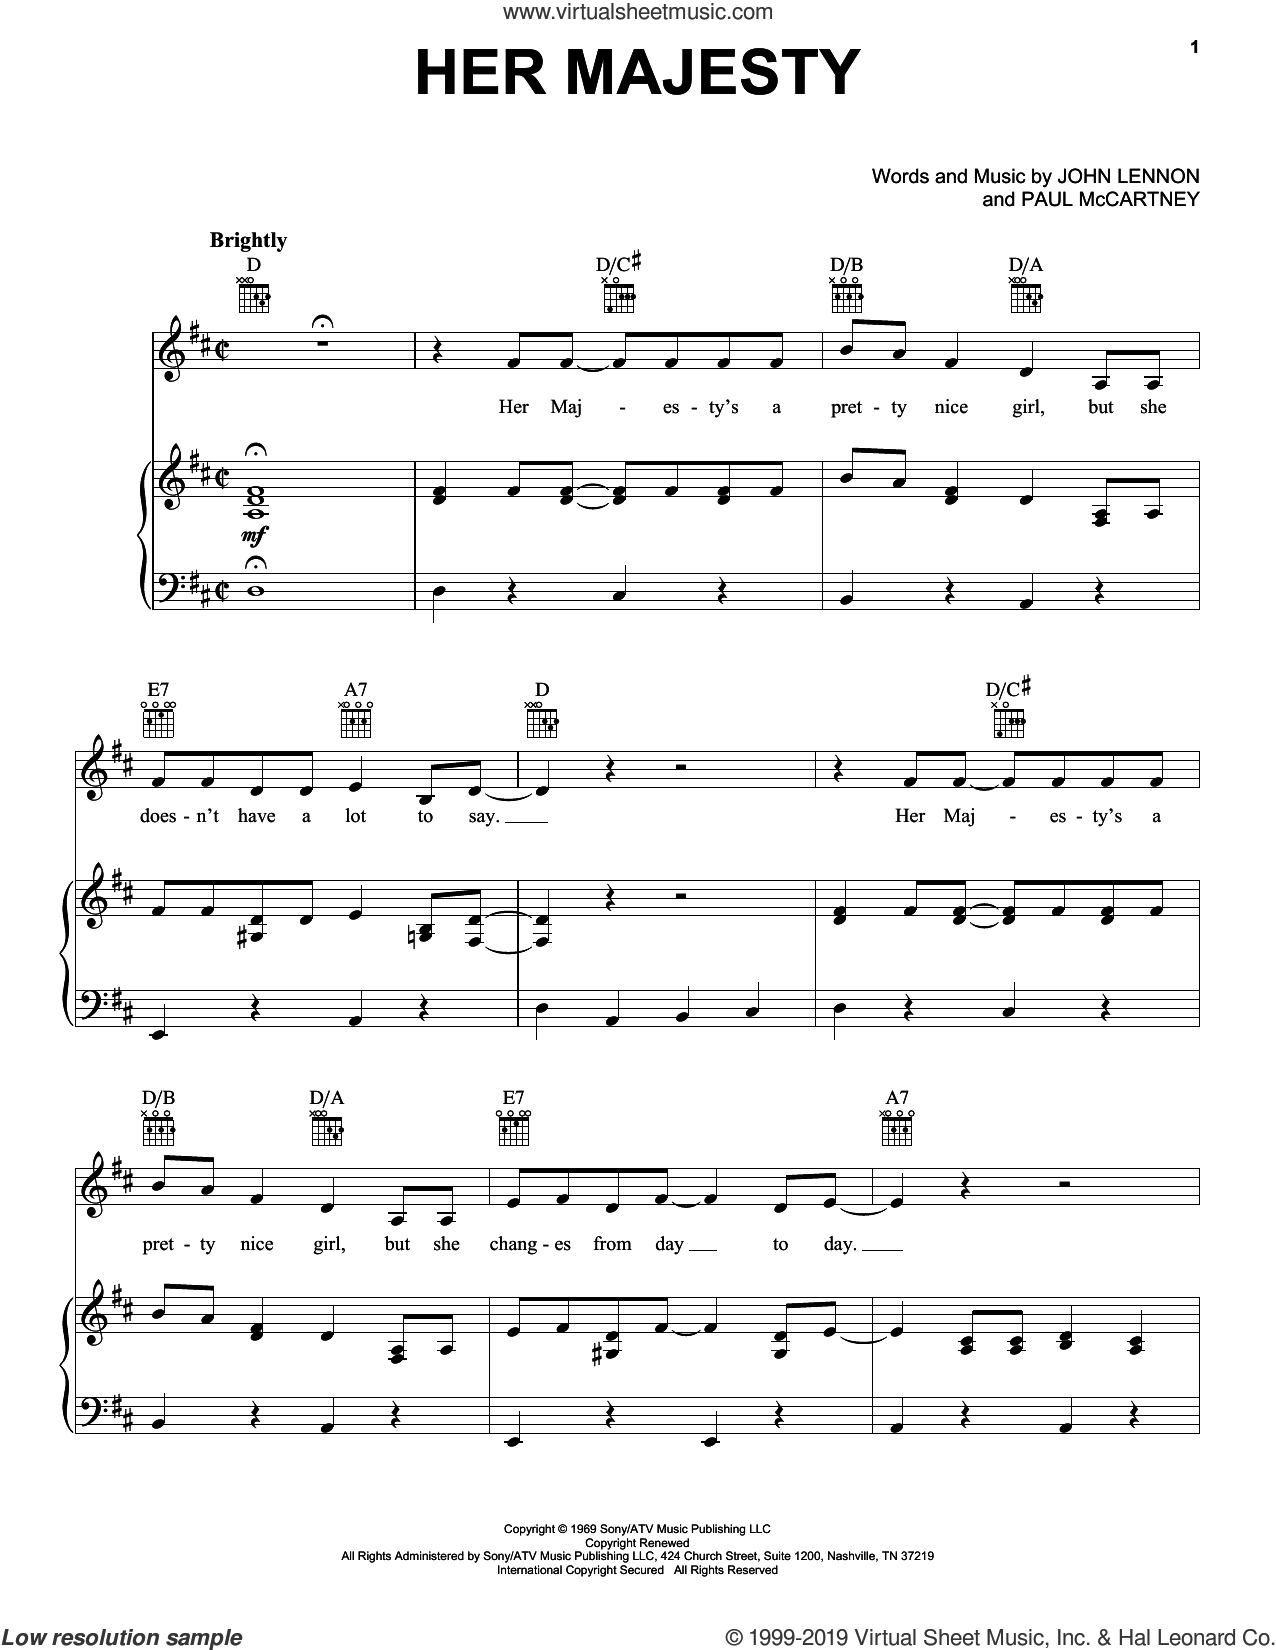 Her Majesty sheet music for voice, piano or guitar by The Beatles, John Lennon and Paul McCartney, intermediate skill level